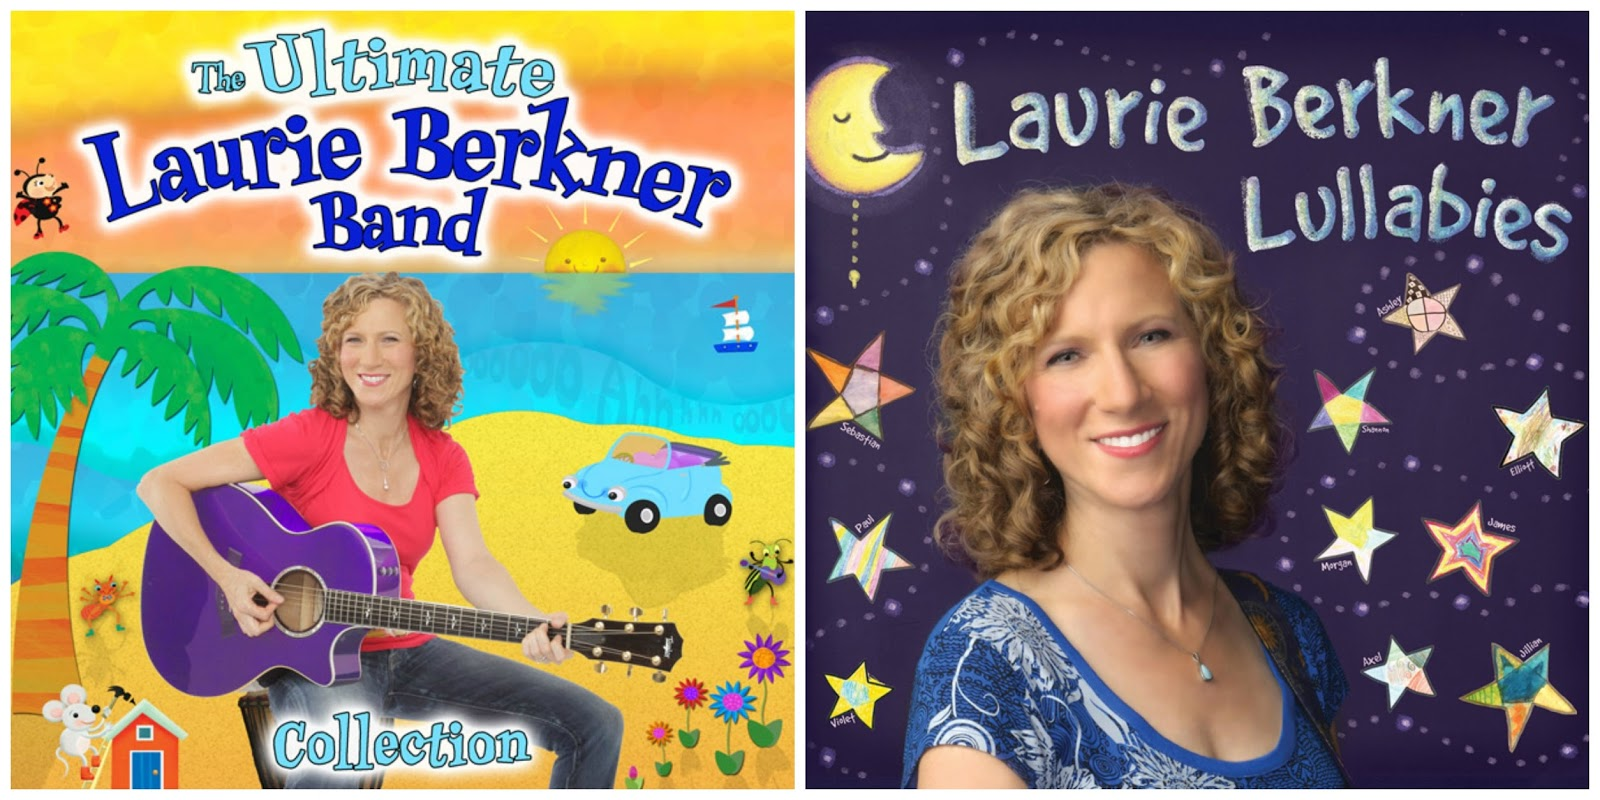 One of our favorite children's music artists is Laurie Berkner. Her songs are catchy and classic.